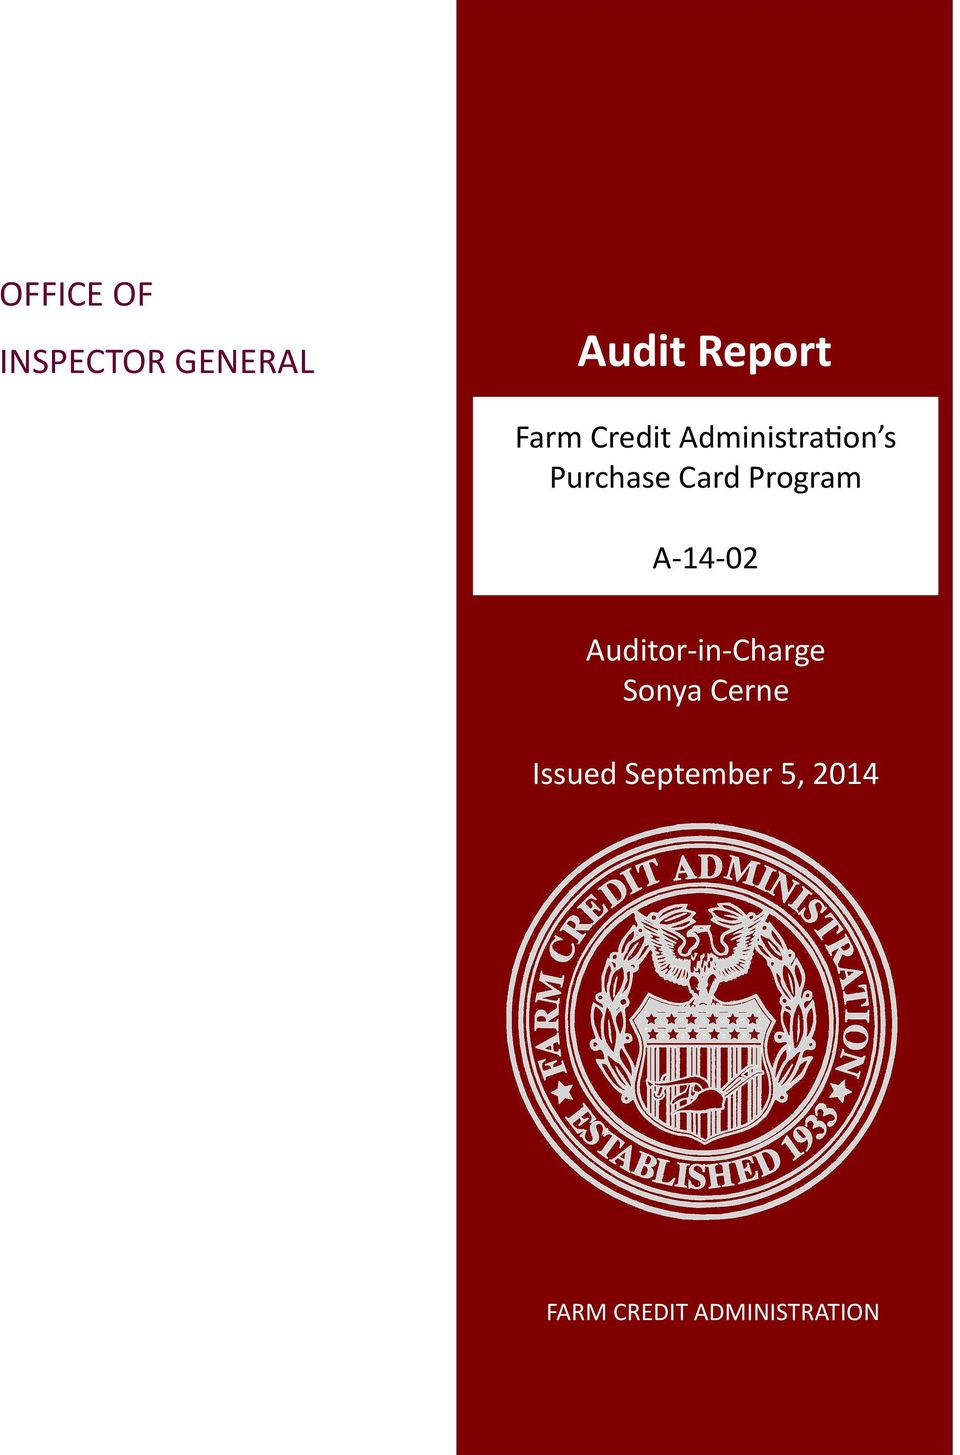 A-14-02 Auditor-in-Charge Sonya Cerne Issued